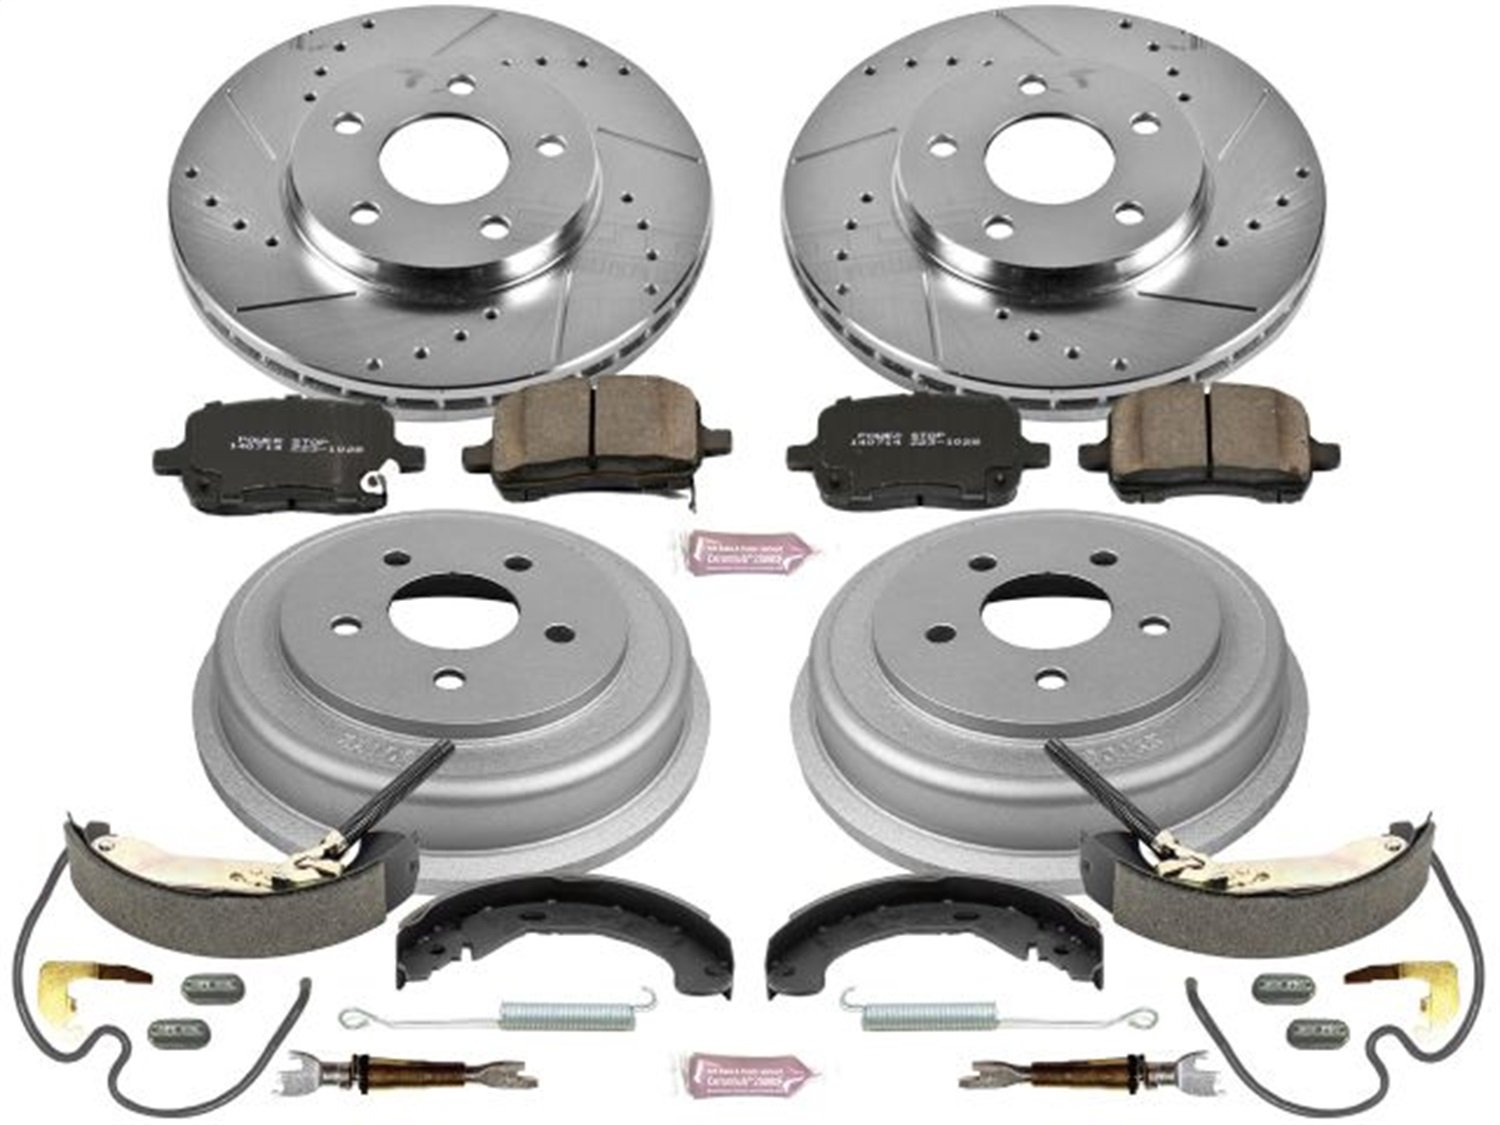 Power Stop Front /& Rear K15239DK Performance Pad Rotor Drum and Shoe Kits